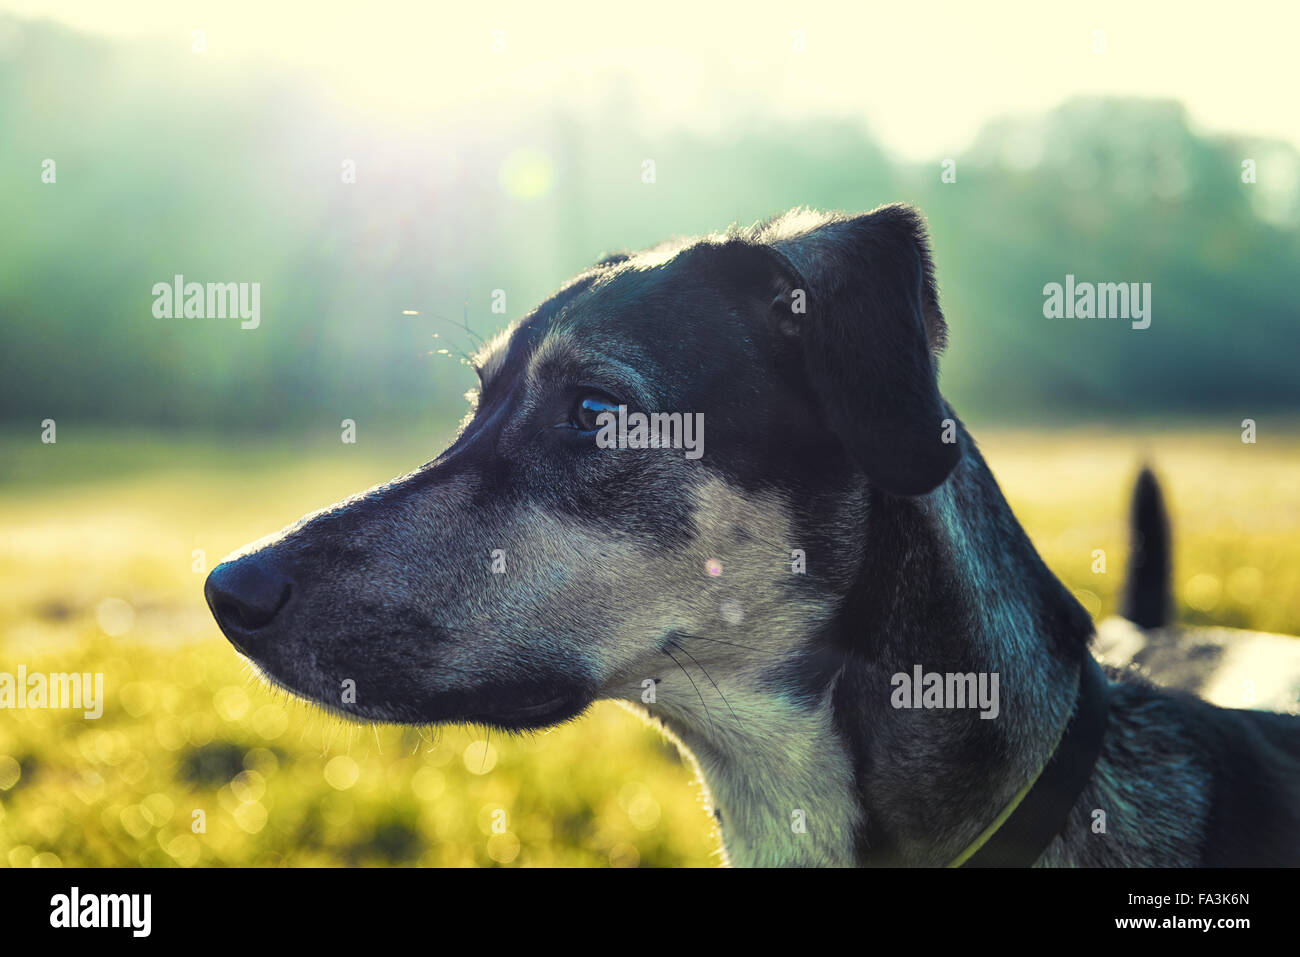 Dog portrait with luminous blurred background - Stock Image